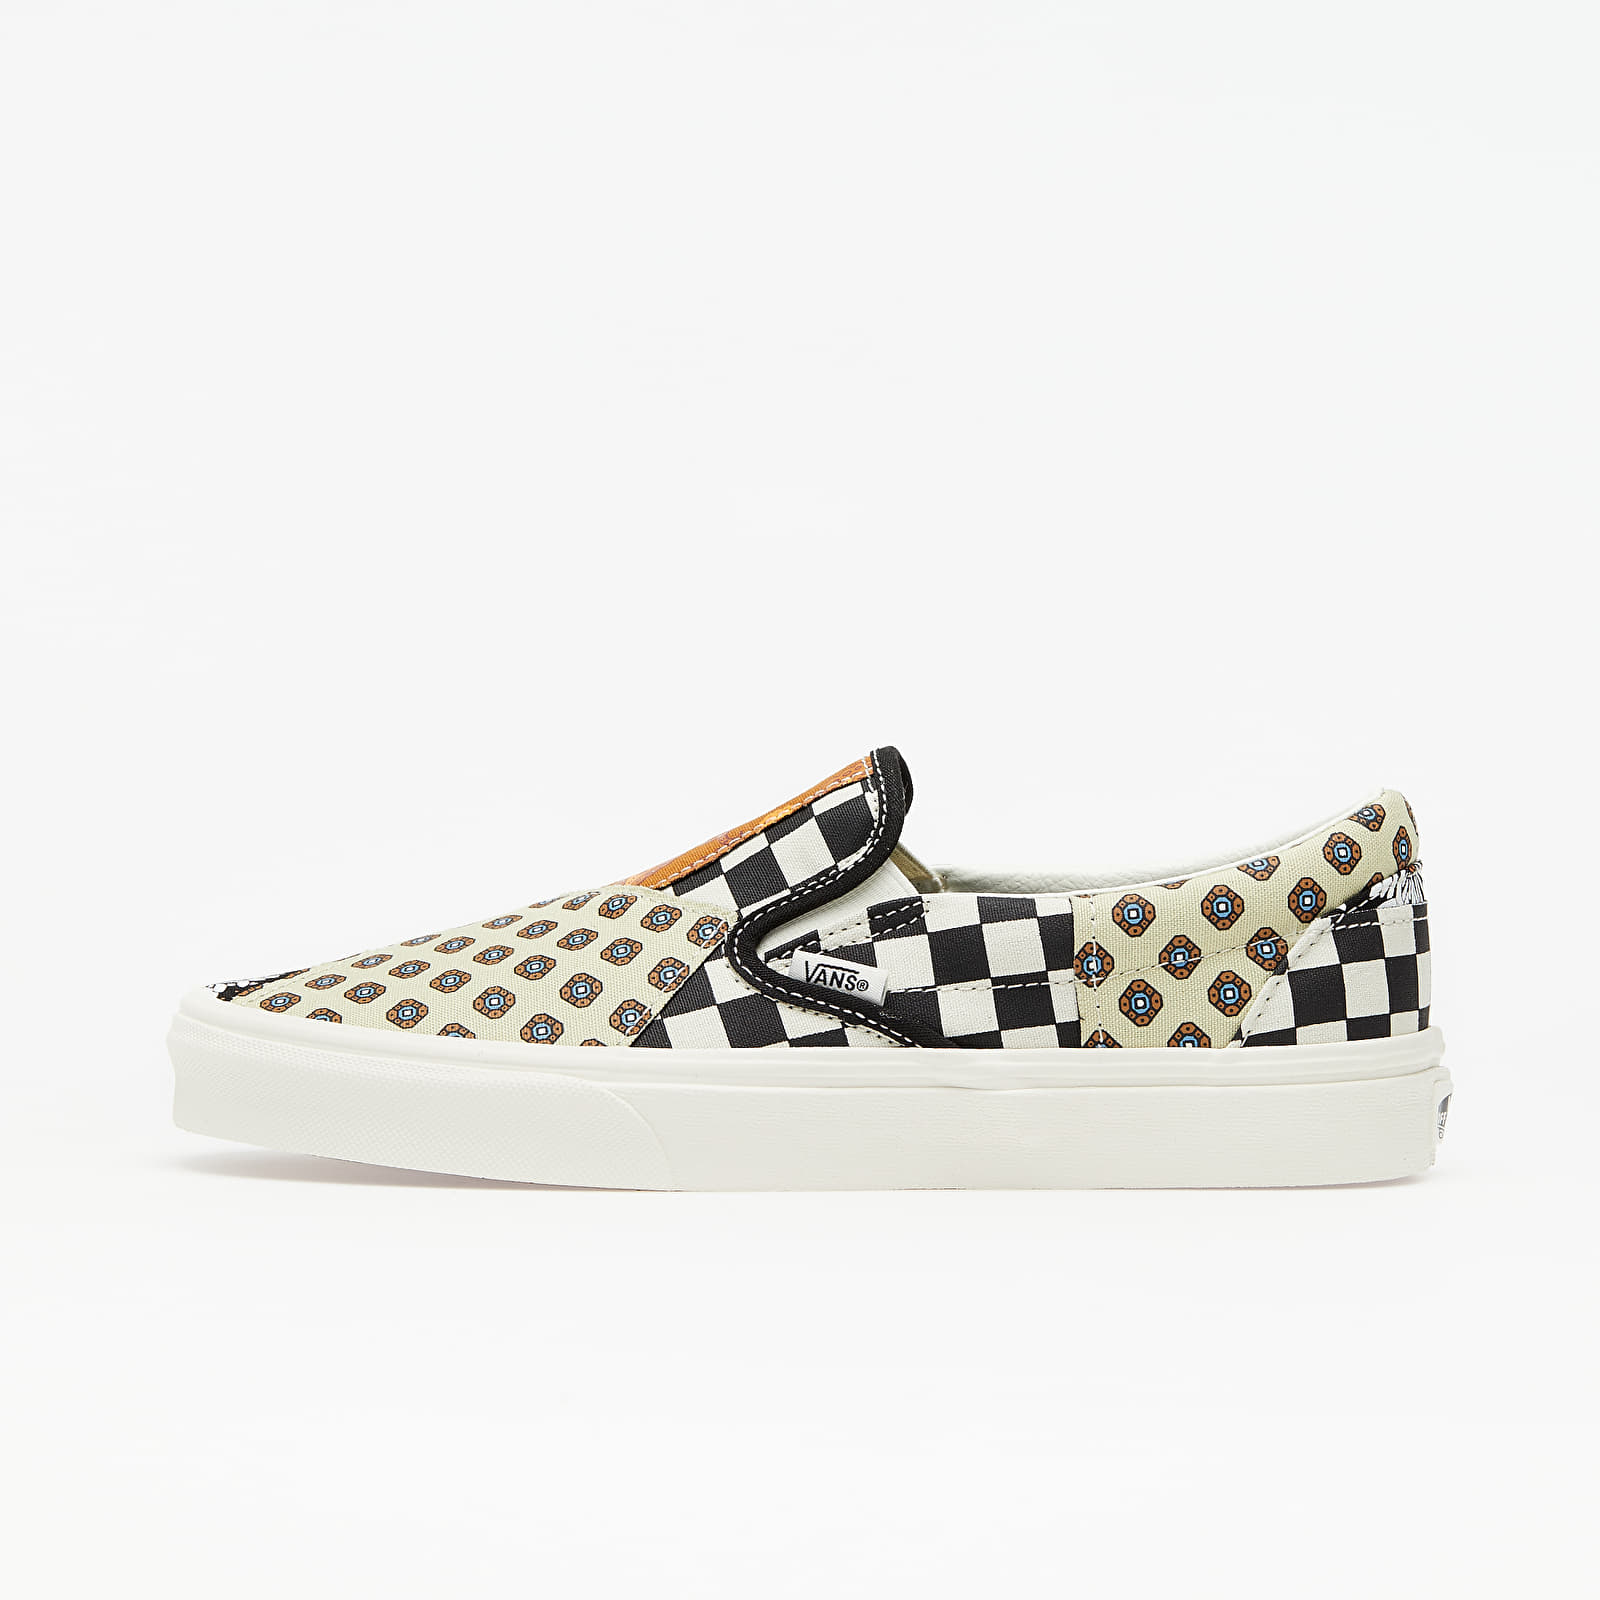 Vans Classic Slip-On (Tiger Patchwork) Black/ True White EUR 38